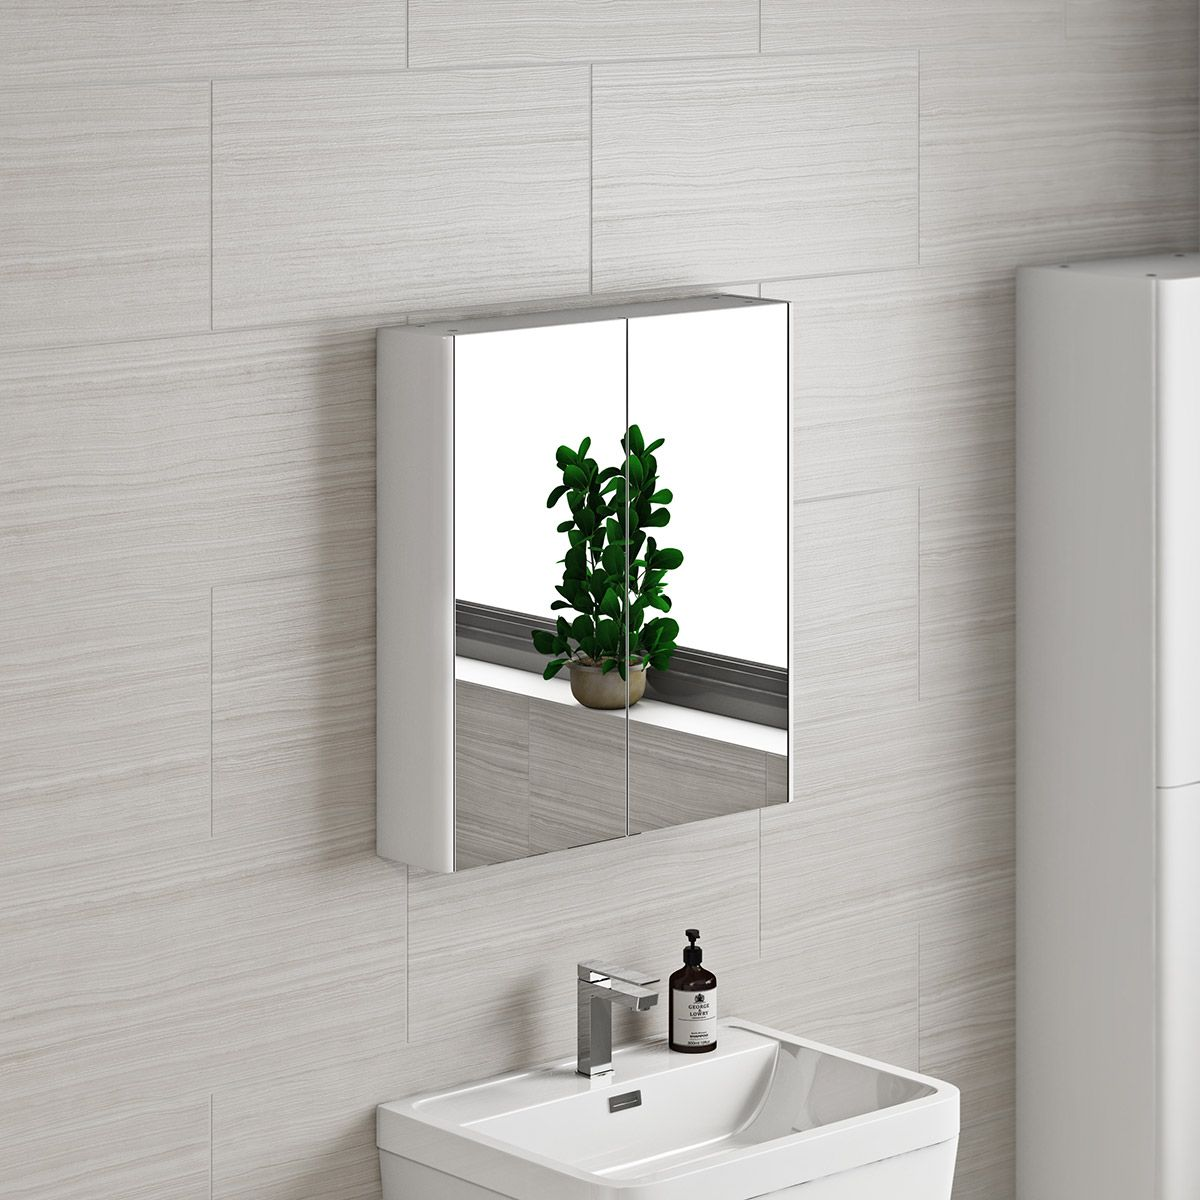 Mode white curved mirror cabinet 600mm | Mirror cabinets and ...